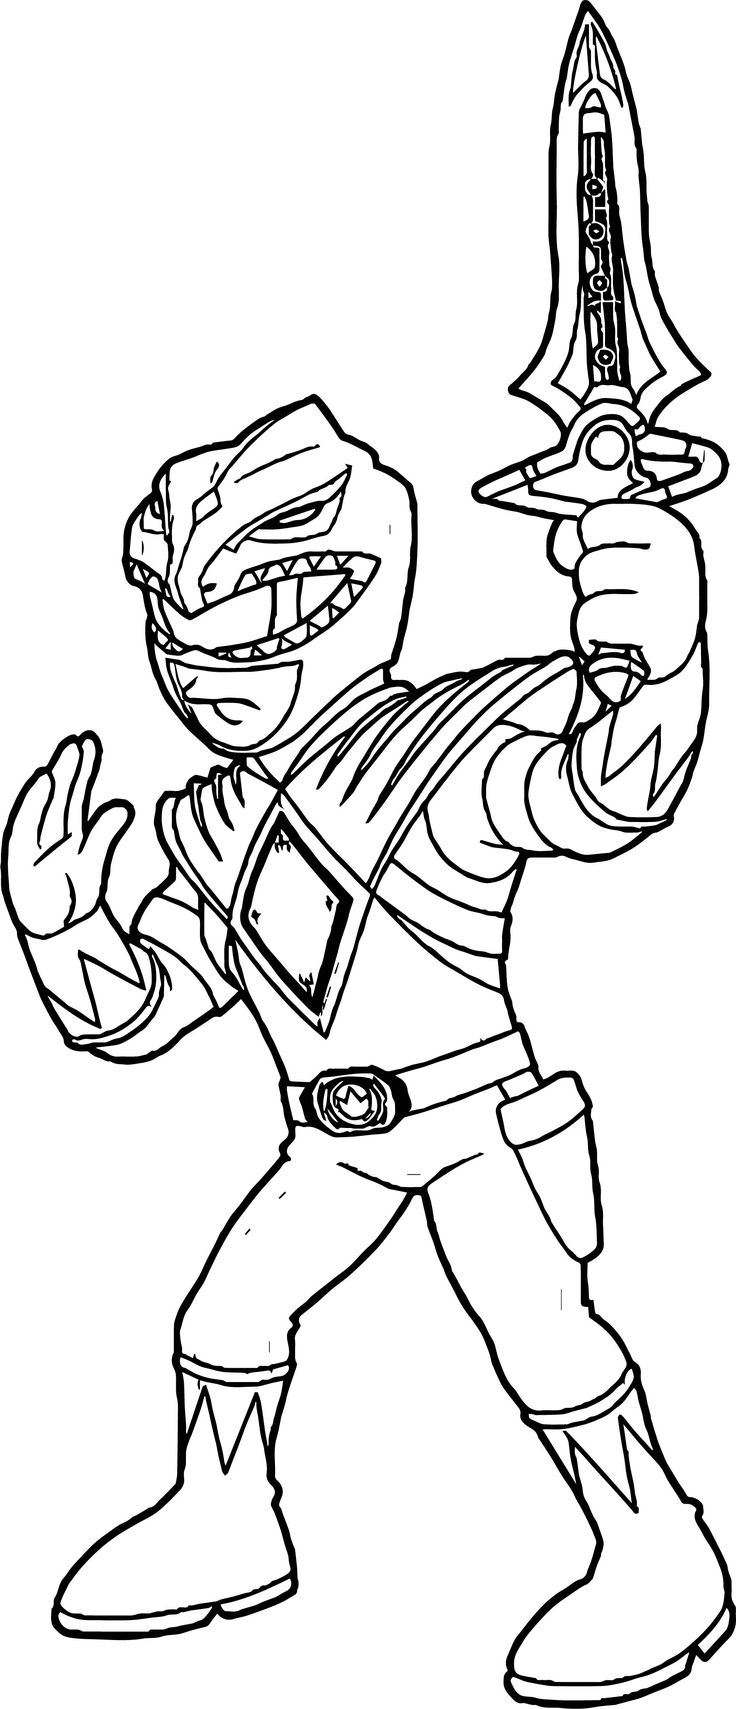 28+ Printable coloring sheet power rangers coloring pages ideas